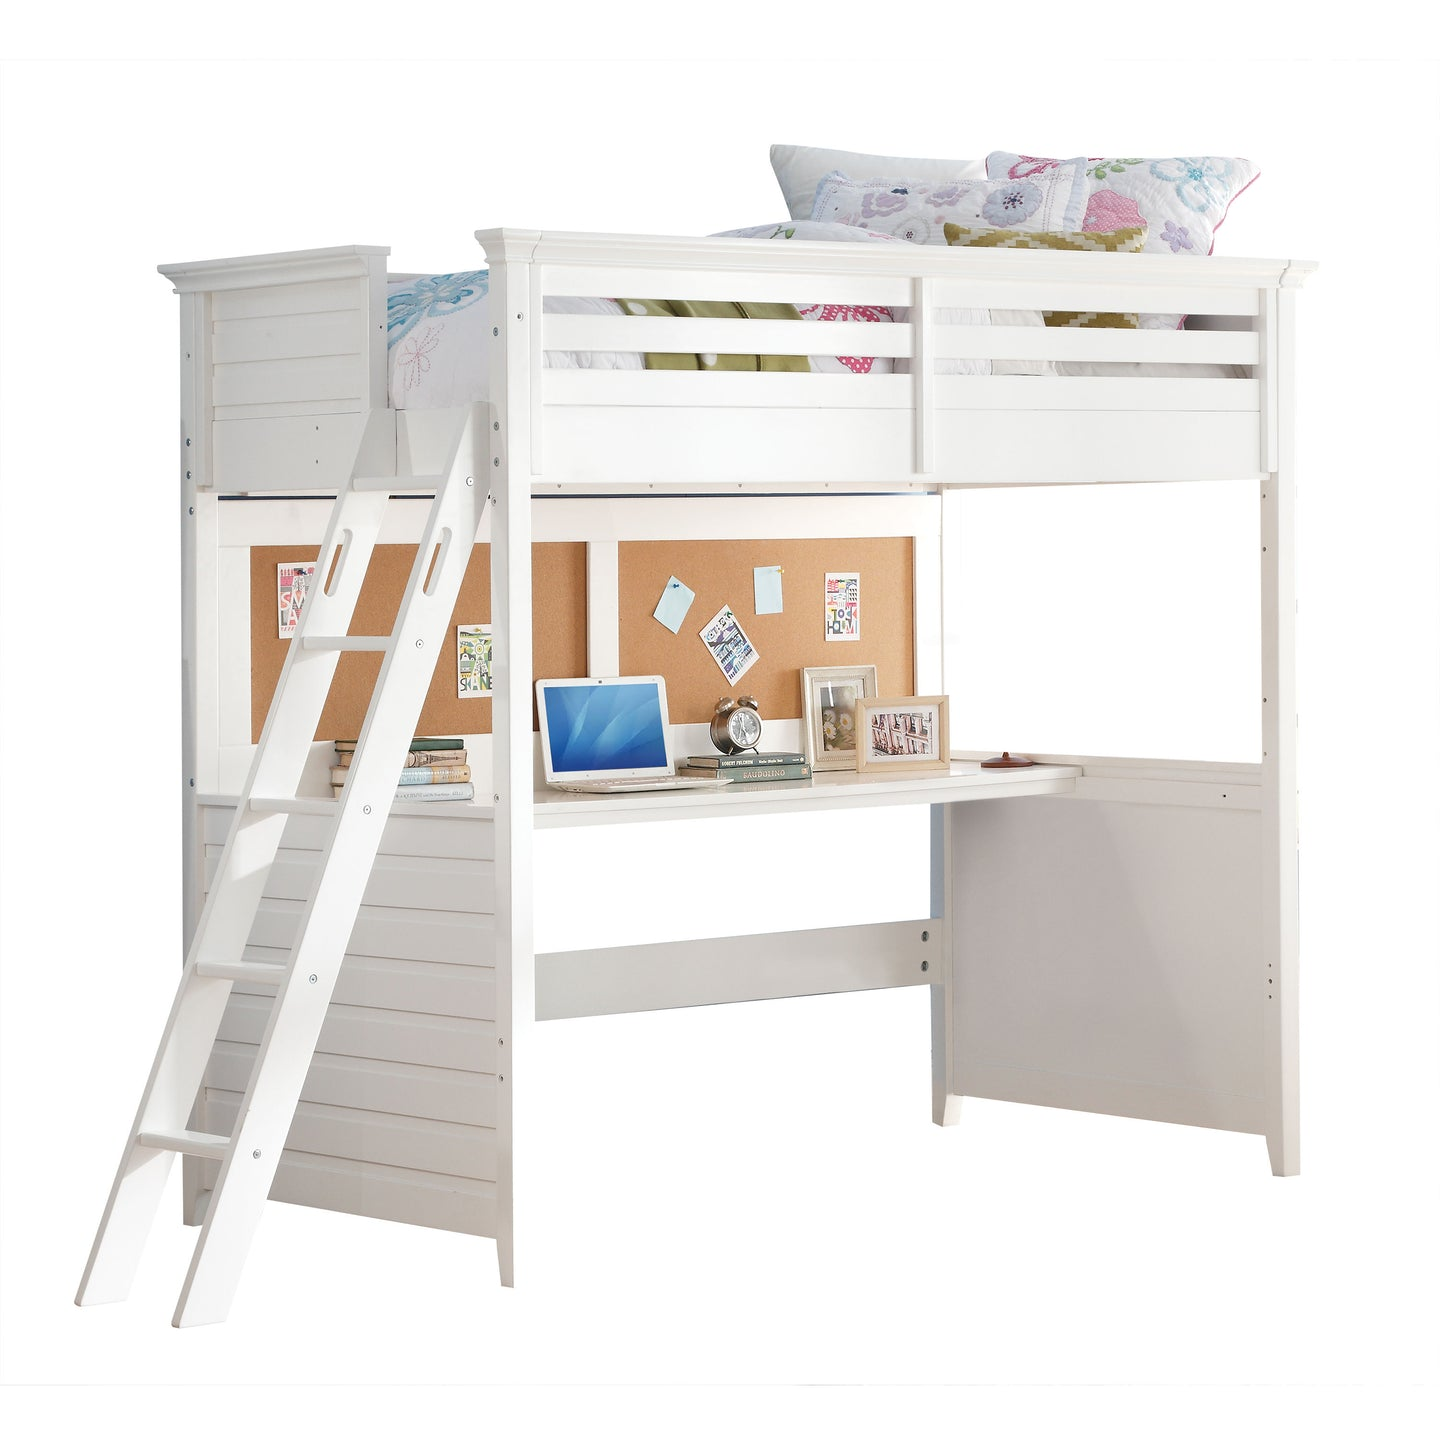 Acme Lacey White Wood Finish Kids Twin Loft Bed with Desk